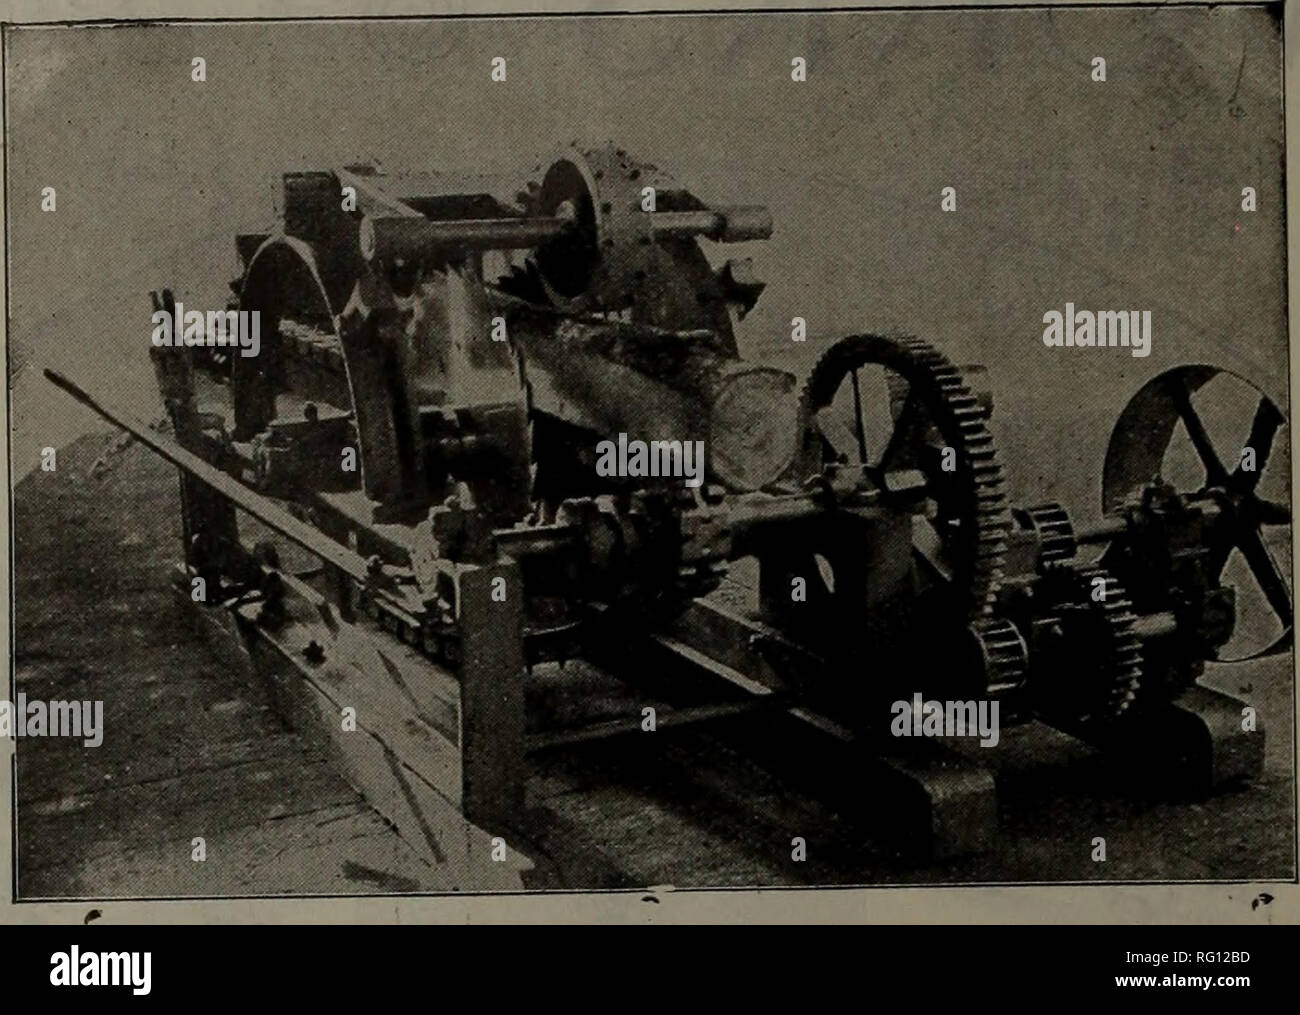 Merritt Machinery